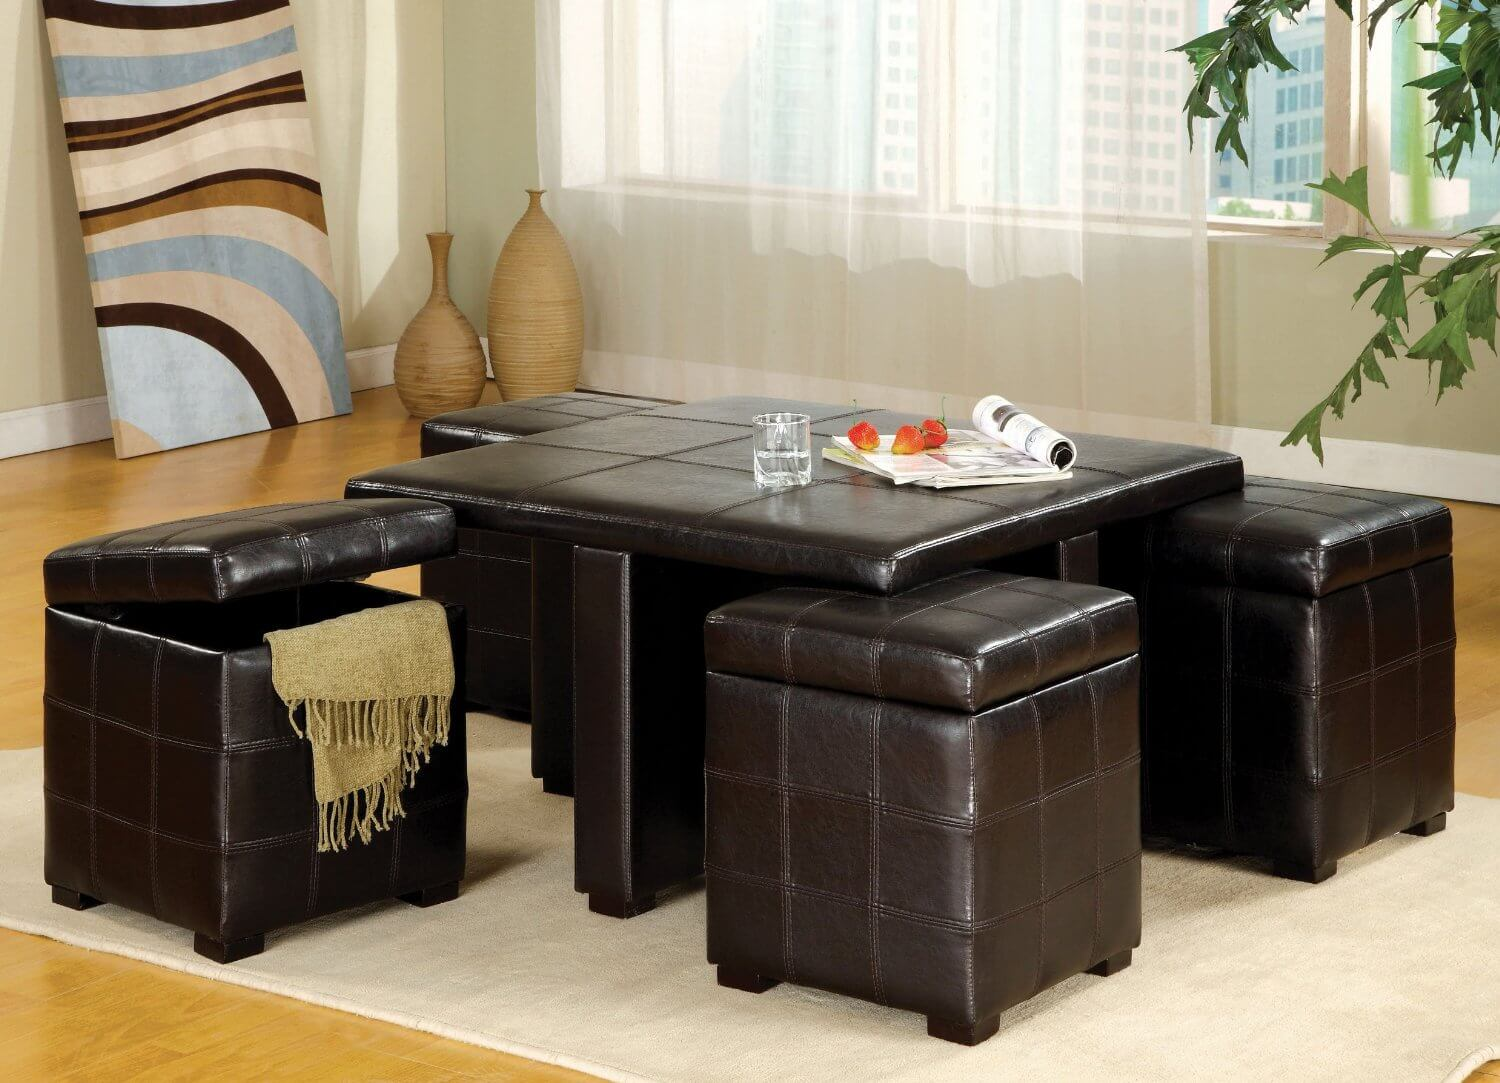 Luxurious Coffee Table Ottoman With Storage. Luxurious Coffee Table And  Ottoman With Storage